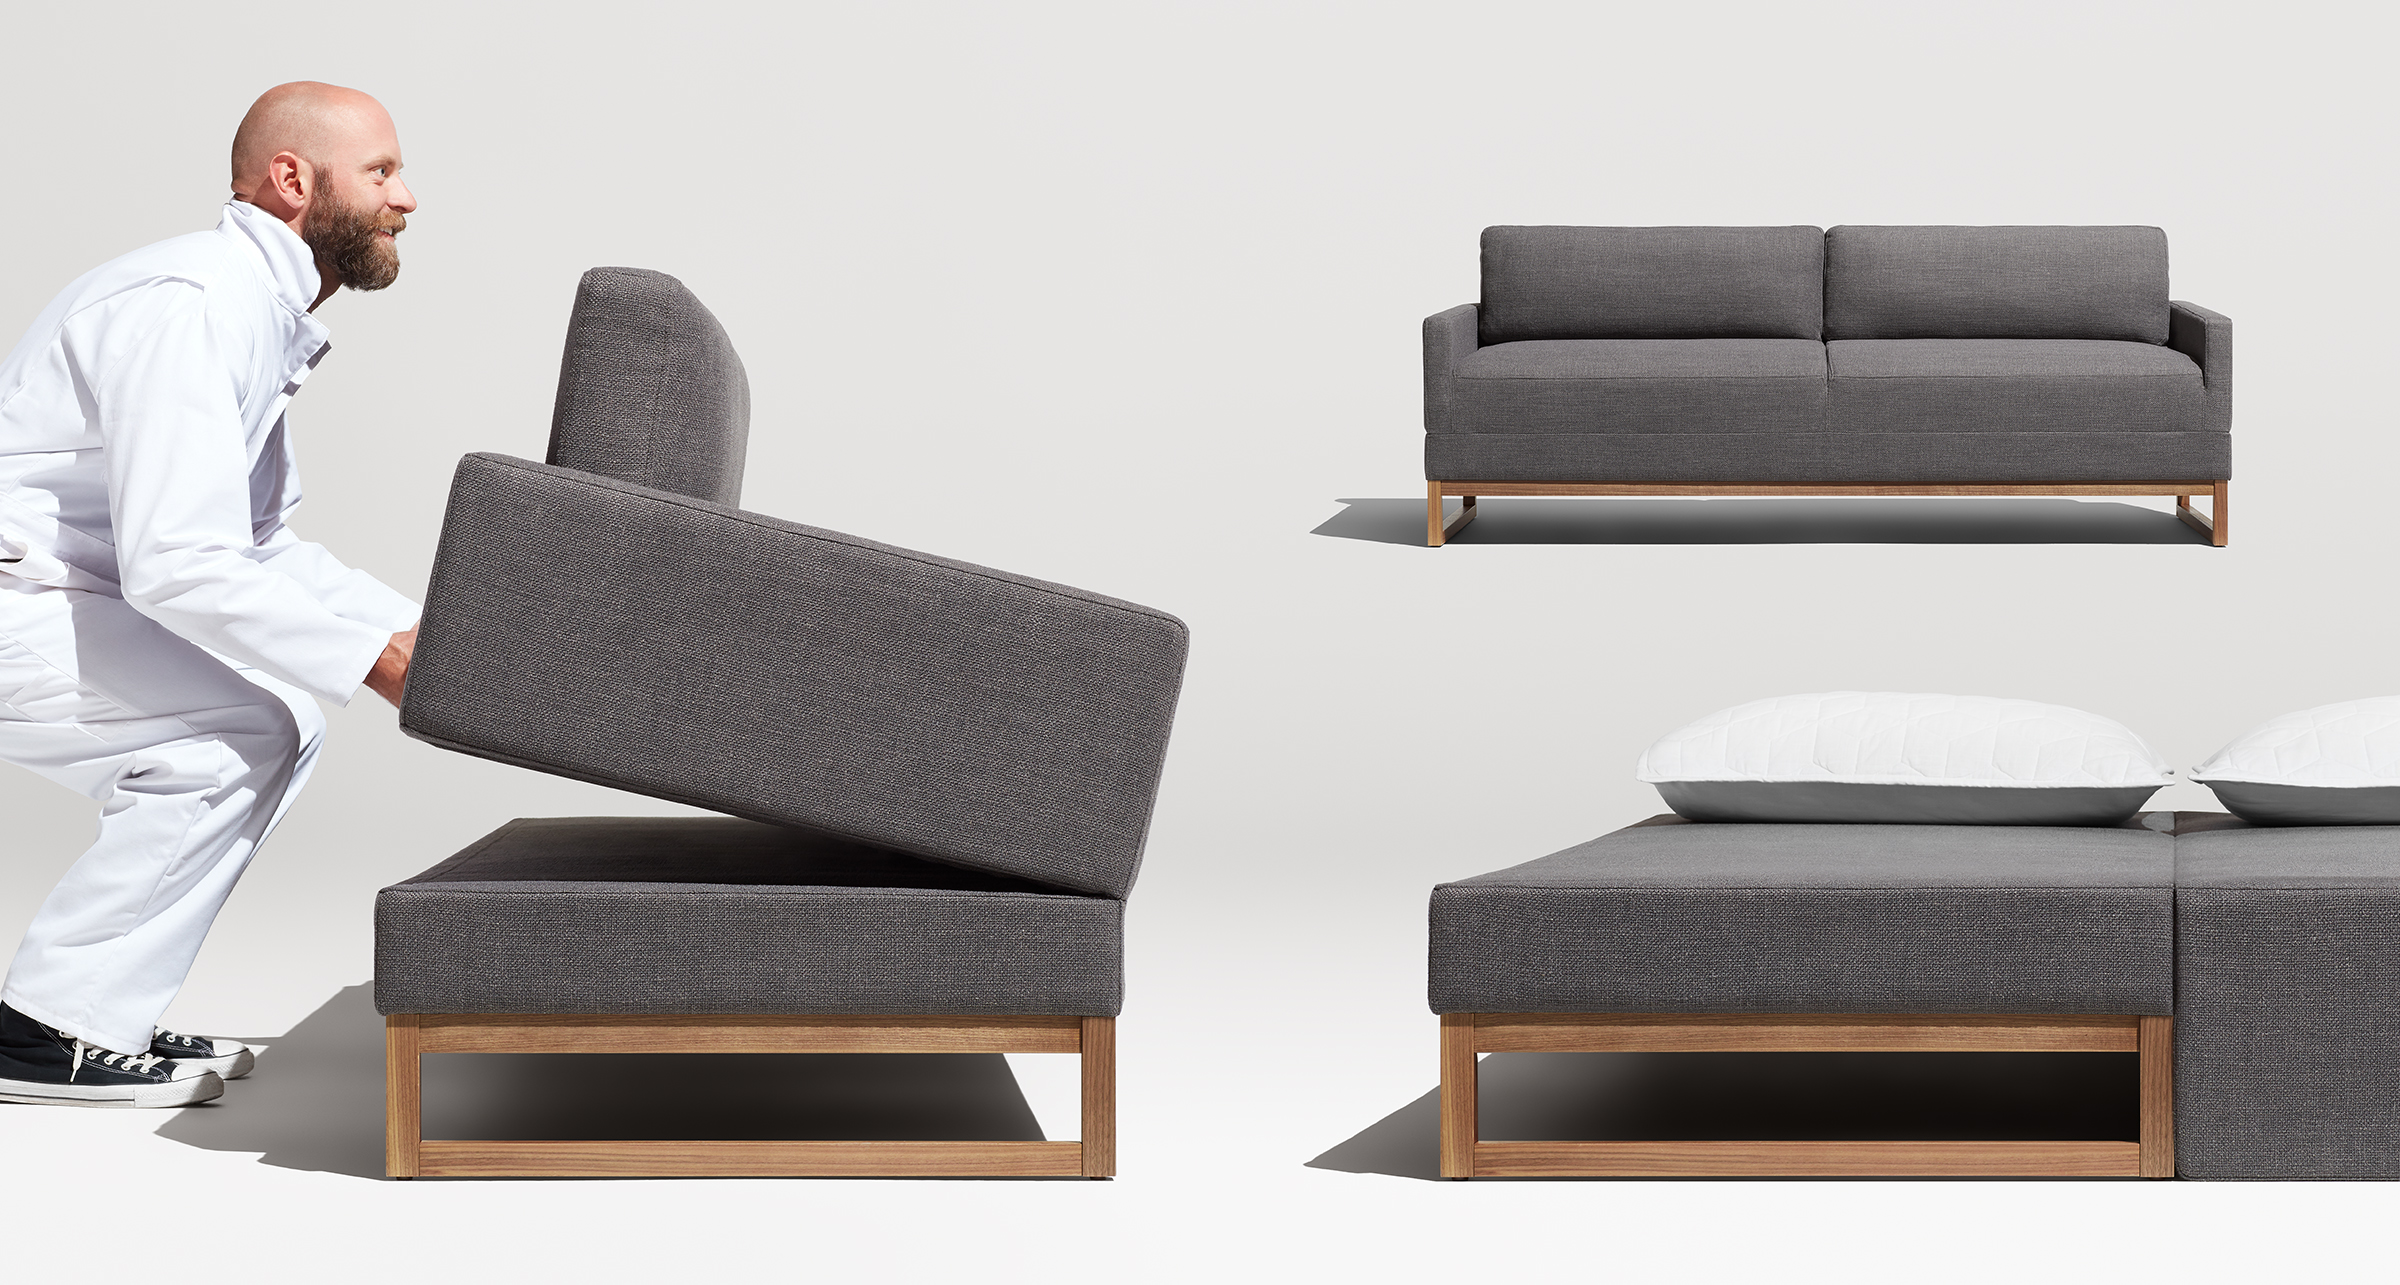 pull out sofa bed convertible sofa bed you can look sofa bed for bedroom you can look DYQEQZC